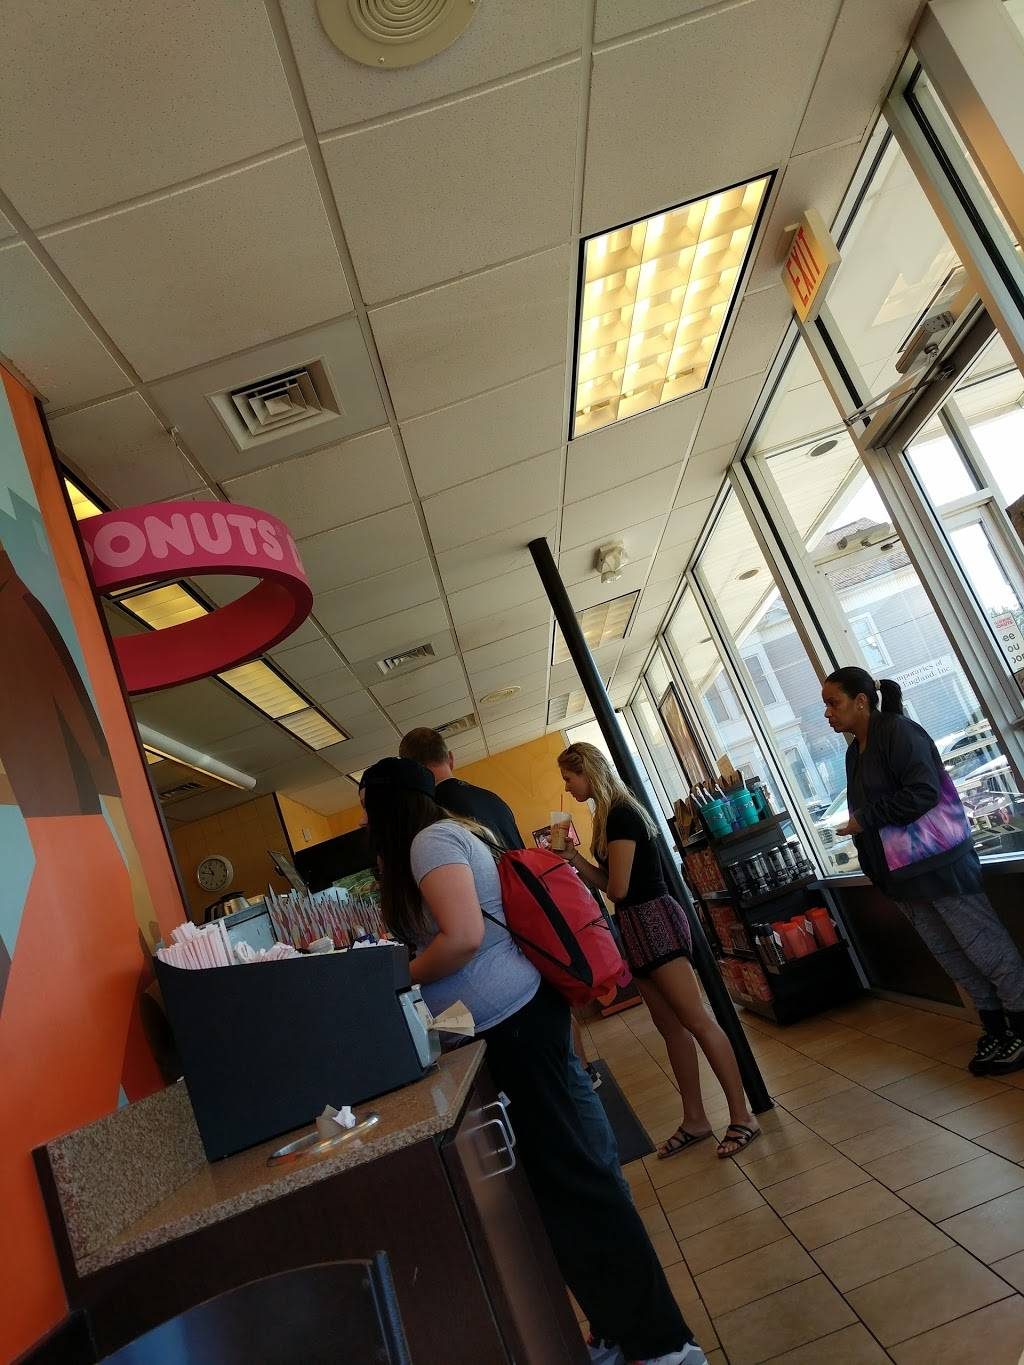 Dunkin | bakery | 1015 Main St, Willimantic, CT 06226, USA | 8604232328 OR +1 860-423-2328